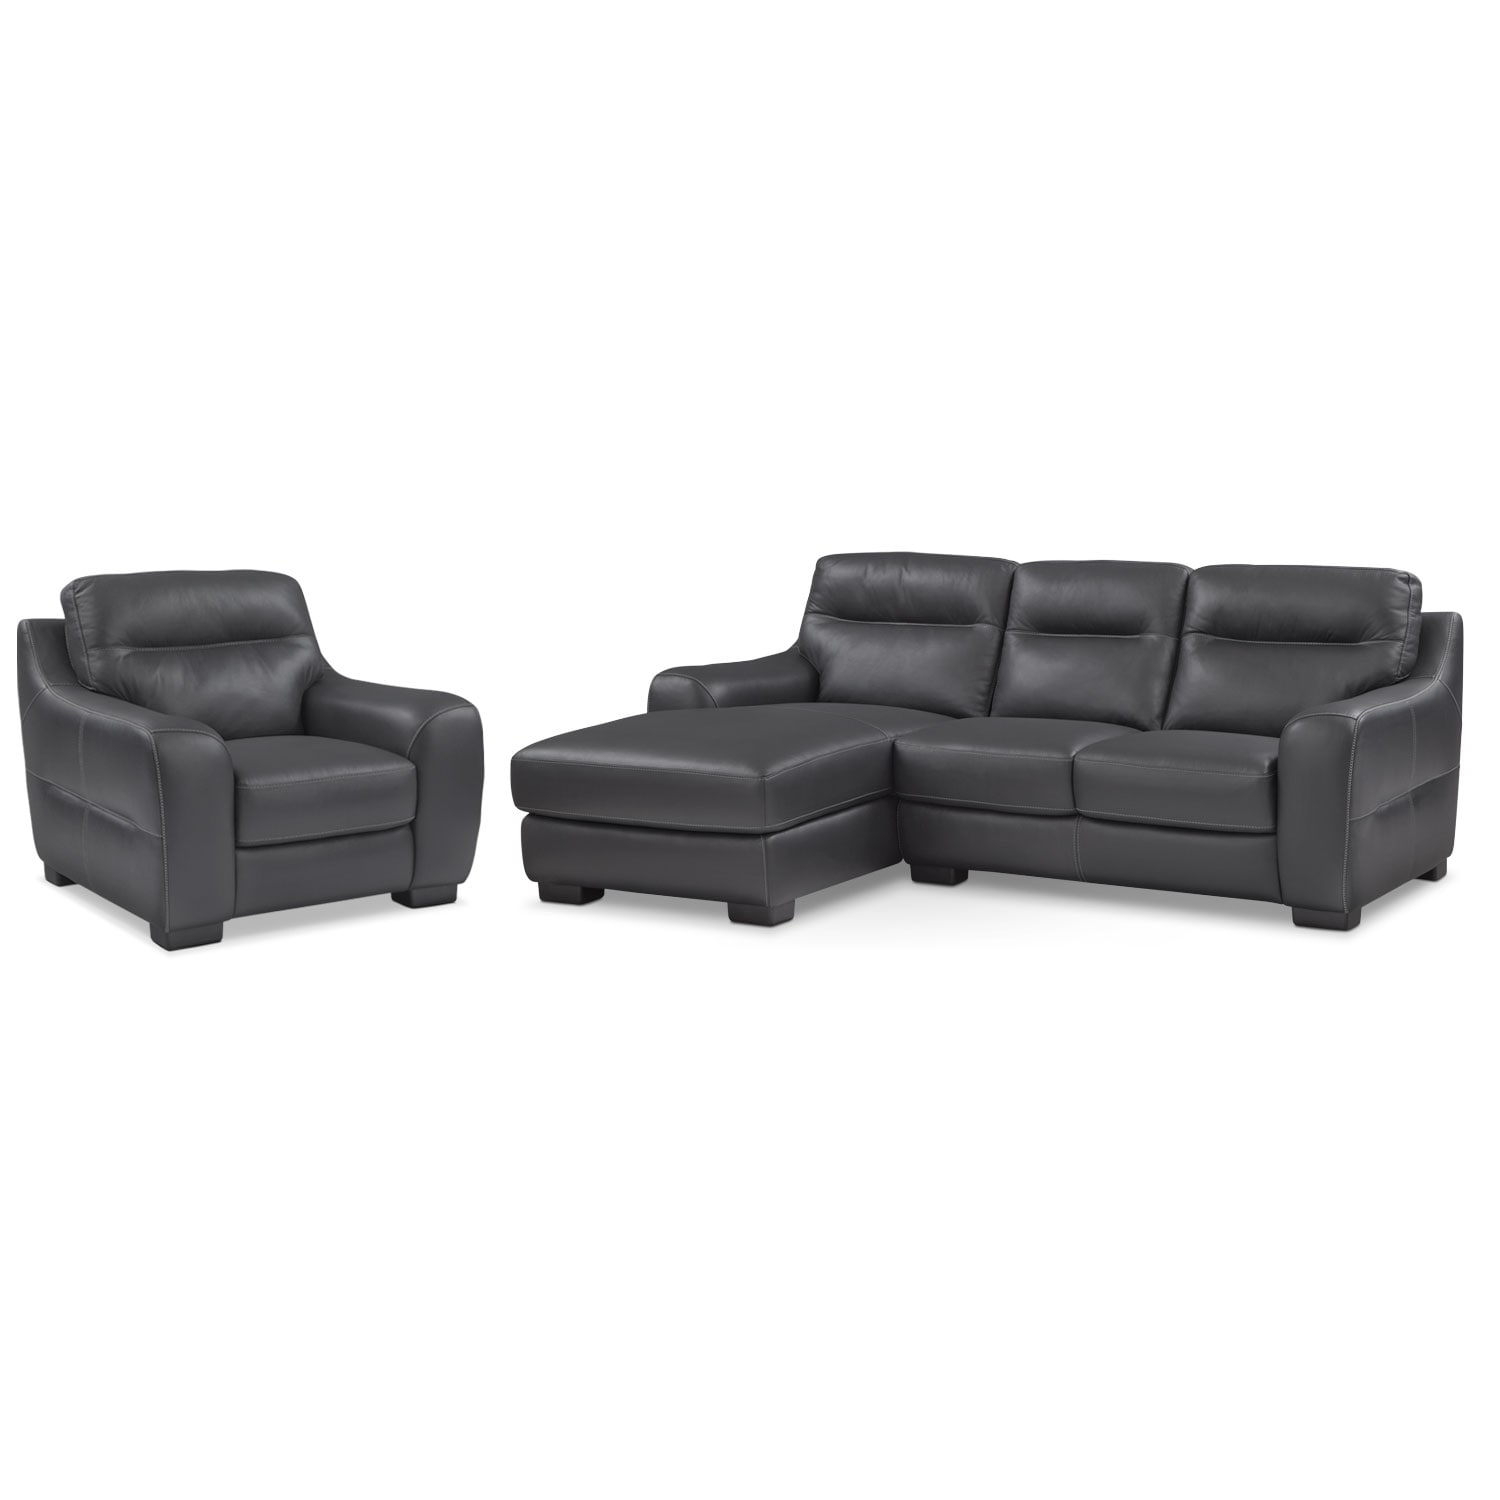 Living Room Furniture - Rocco 2-Piece Left-Facing Chaise Sectional and Chair  - Black